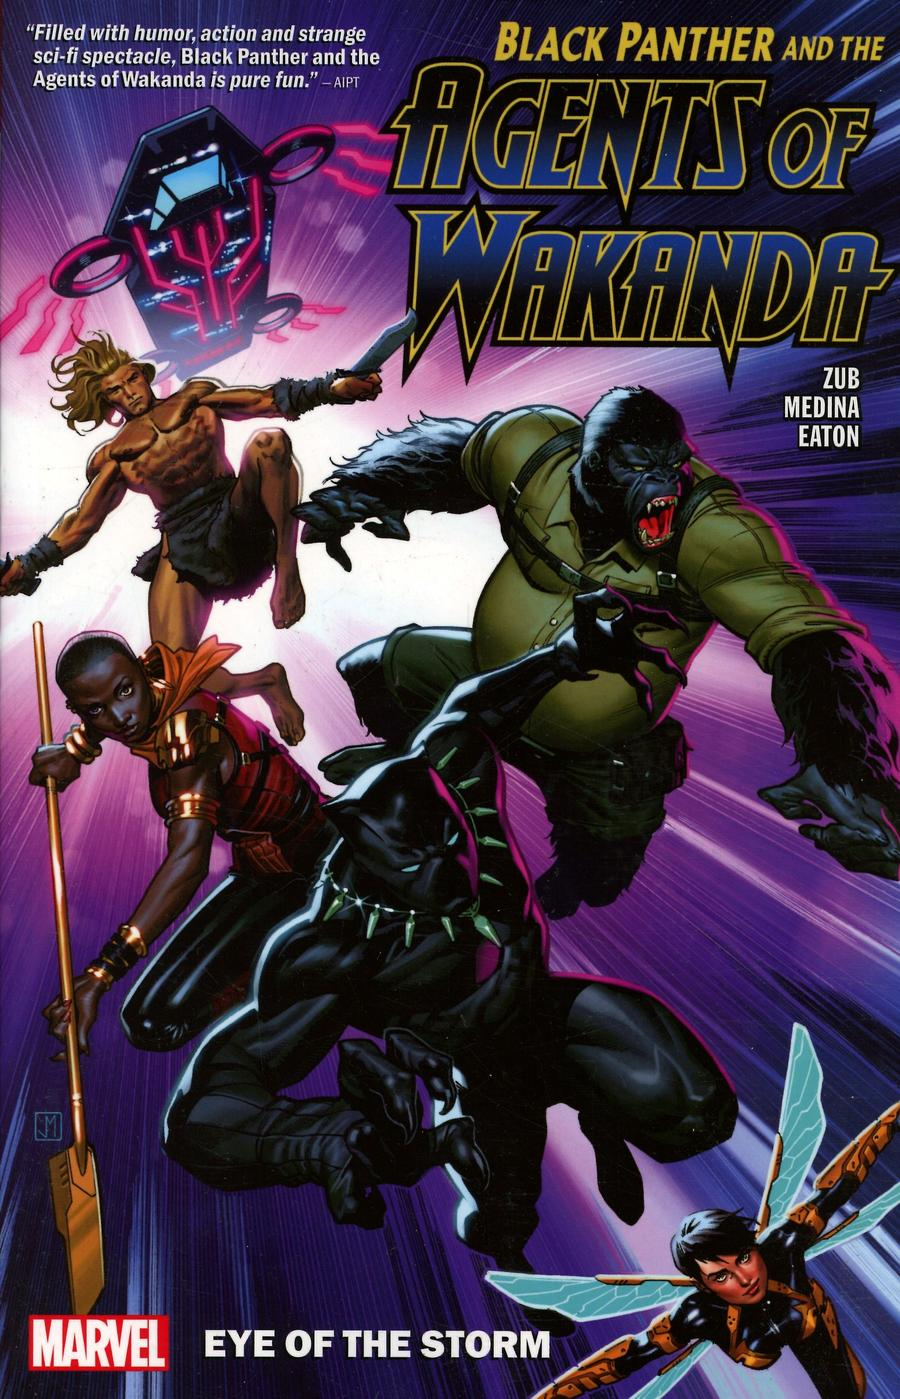 Black Panther And The Agents Of Wakanda Vol 1 Eye Of The Storm TP